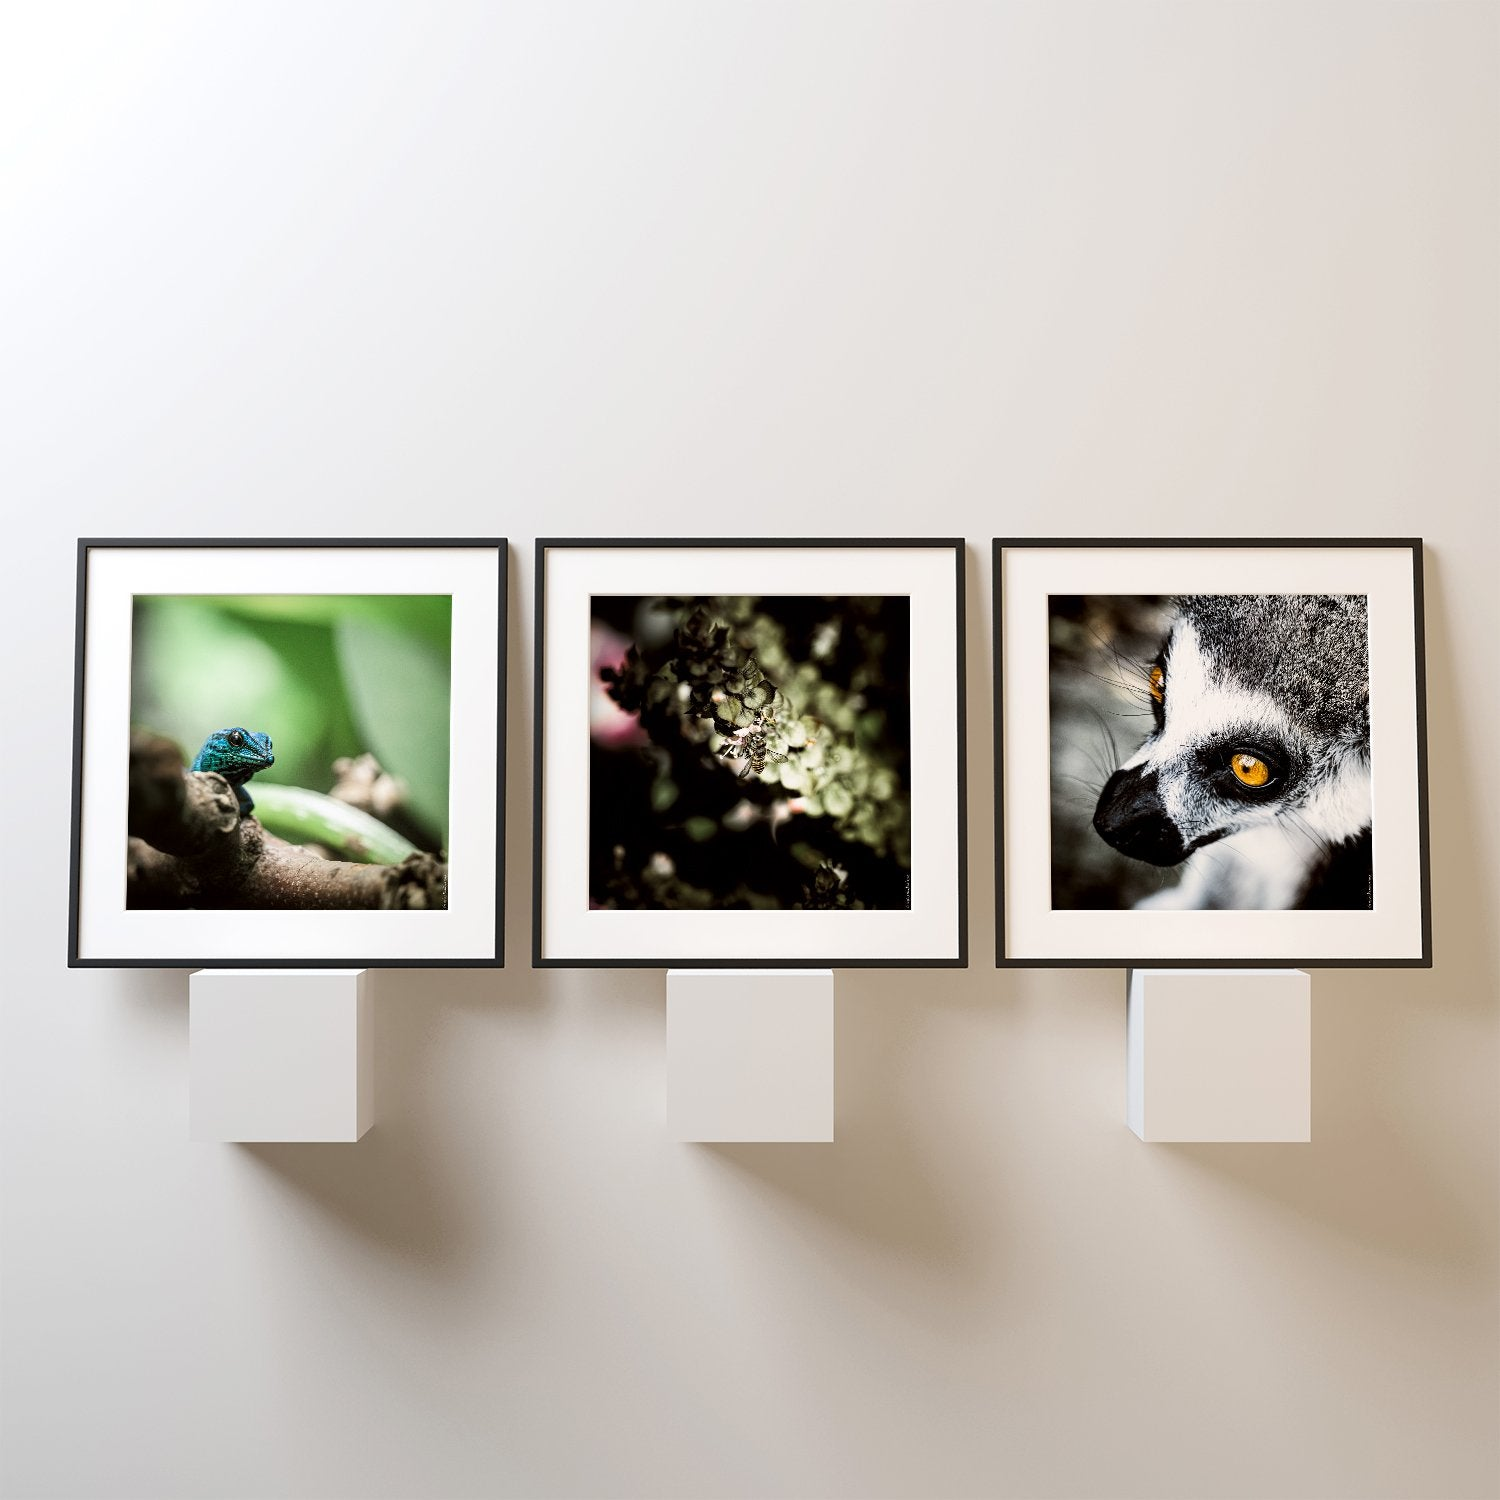 Three animals in square photo prints on the wall